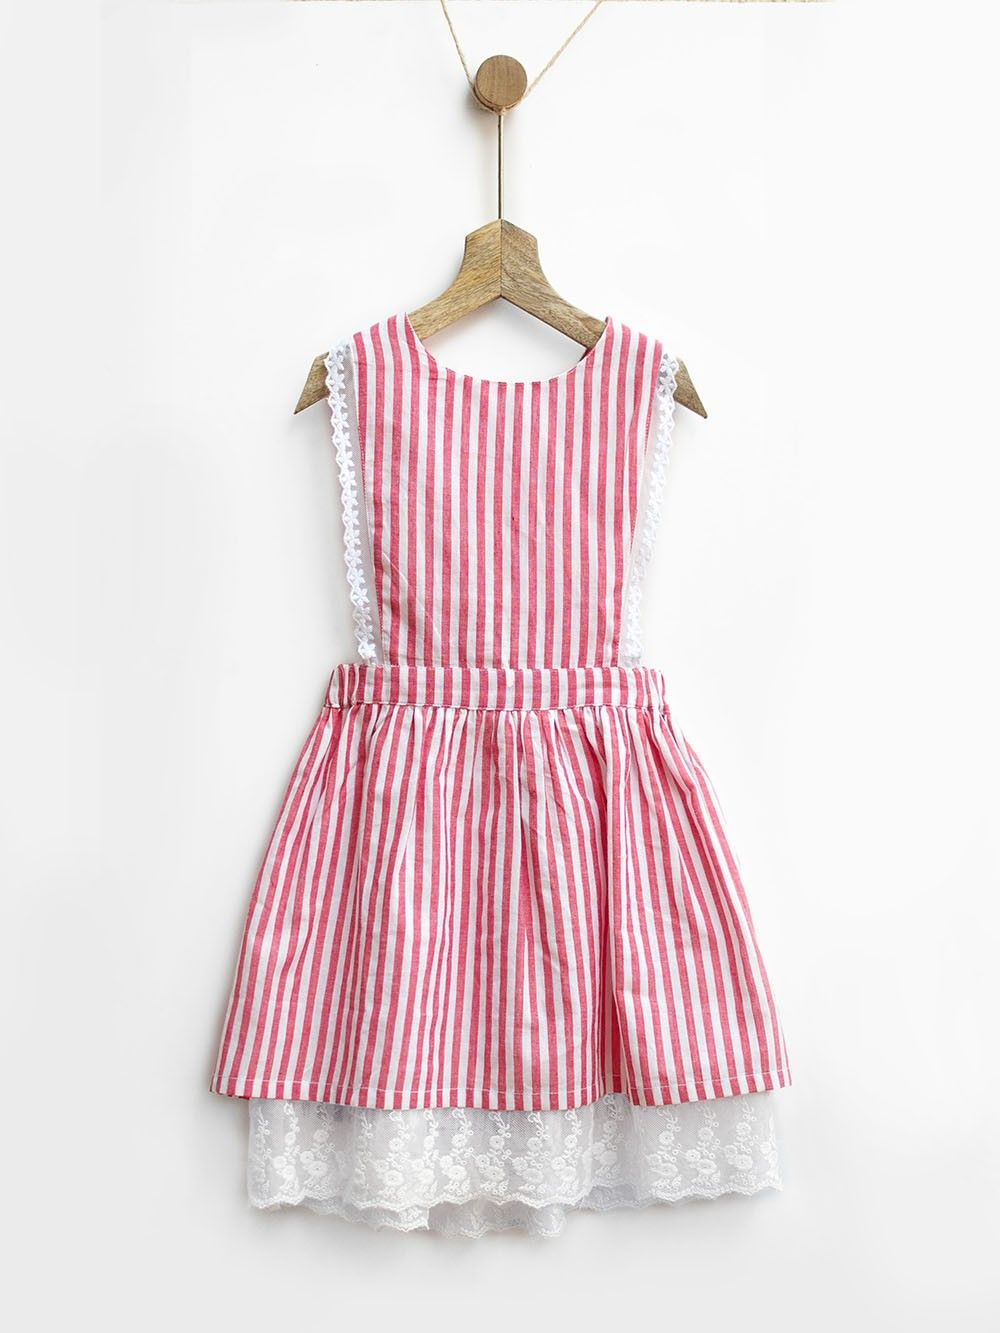 75f3b6a6d04 Buy Red White Gingham Stripes Cotton Pinafore Dress online at Theloom